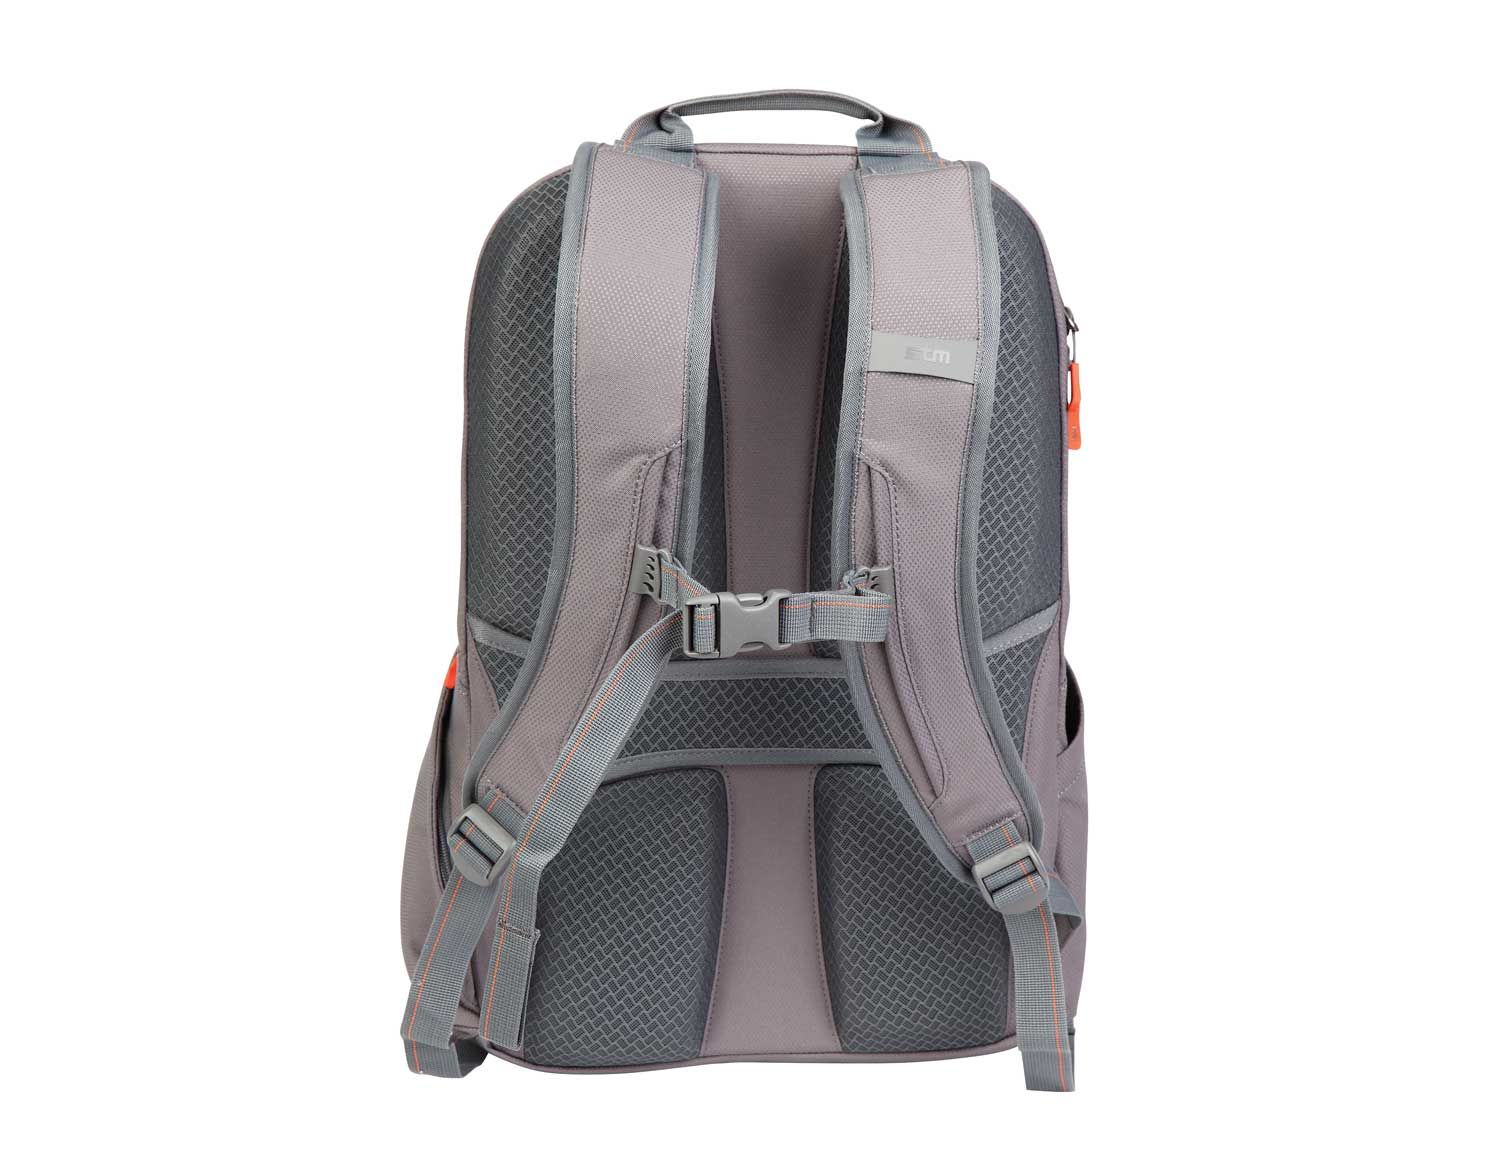 MG 9362 admin large Review: STM Impulse Backpack